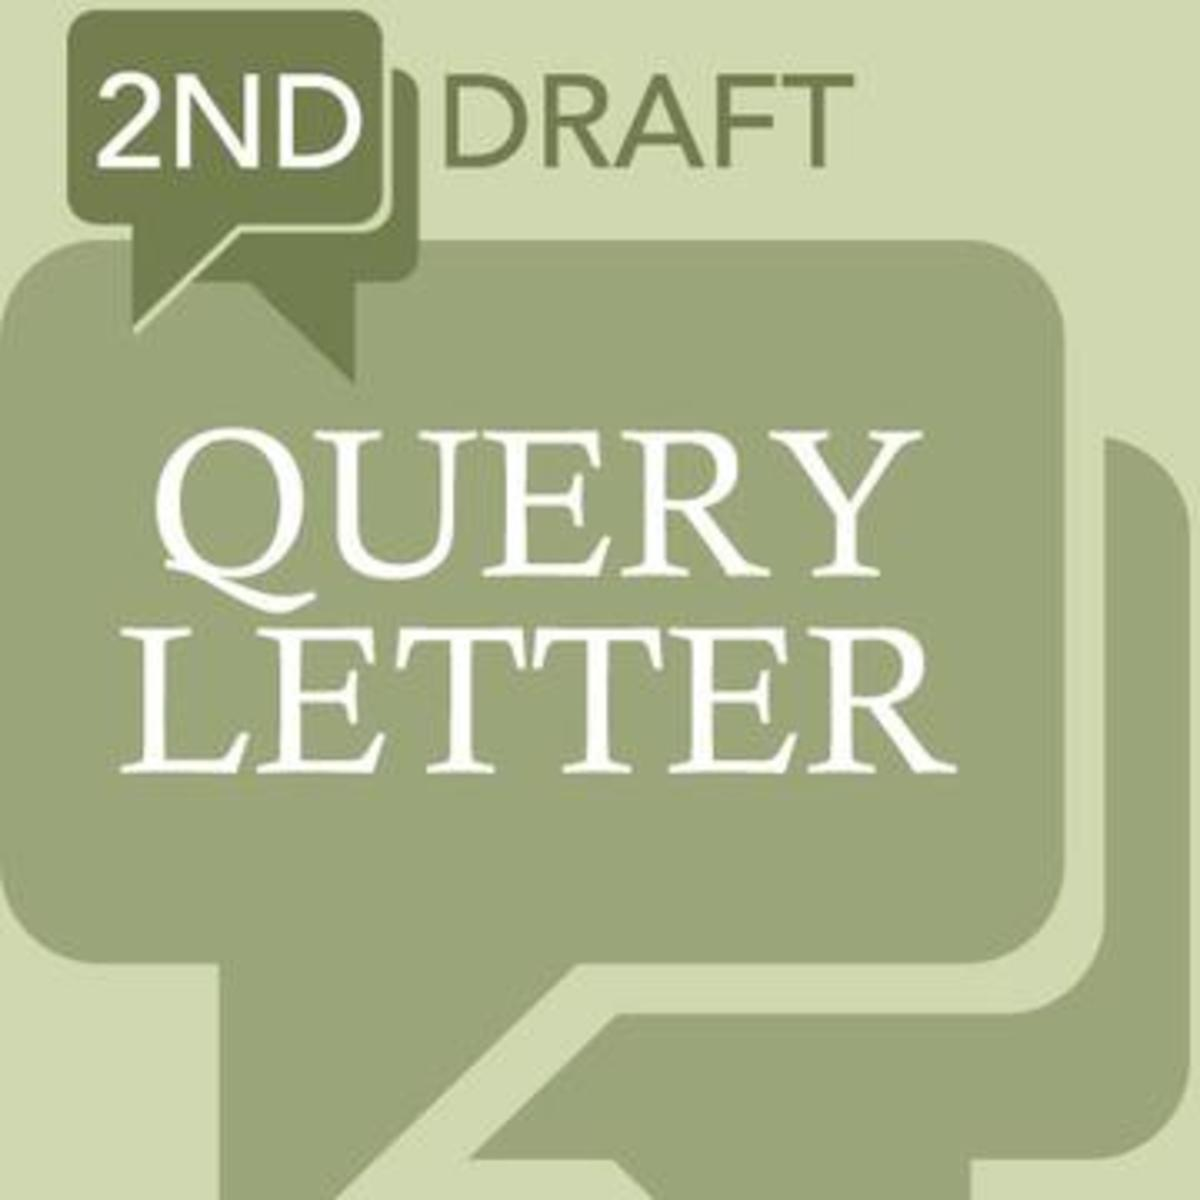 2nd draft query letter